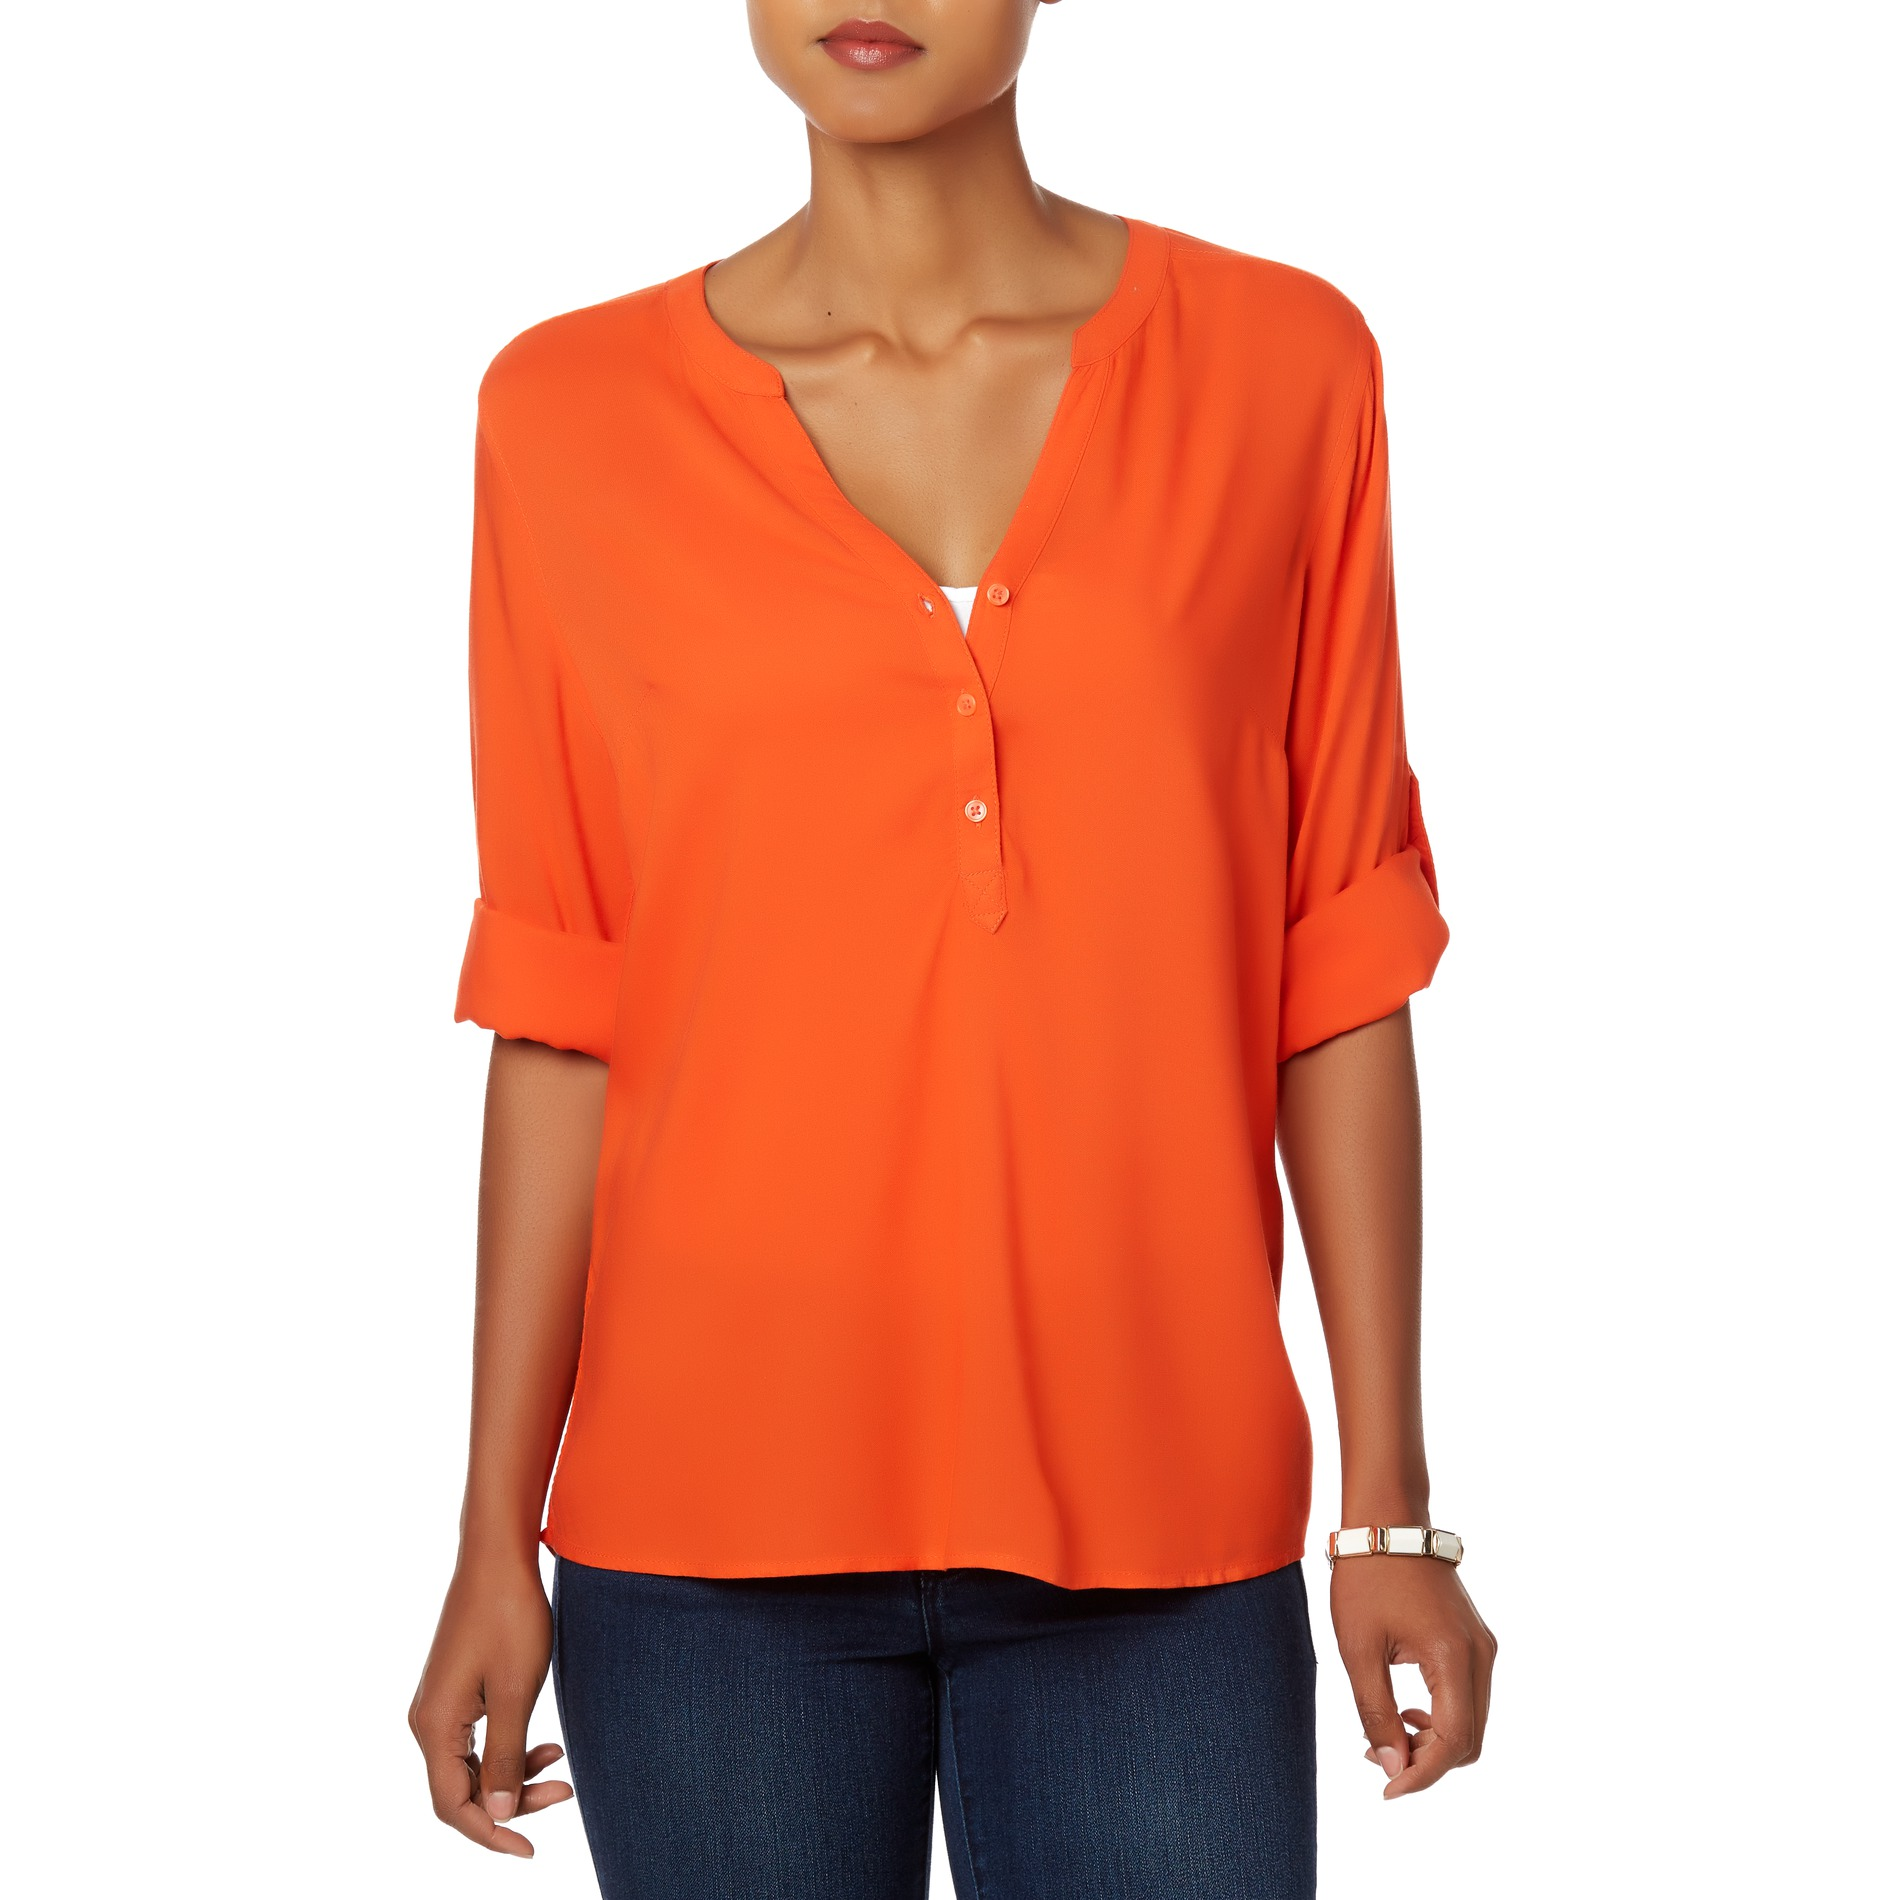 Wear women's tops to look stylish and trendy